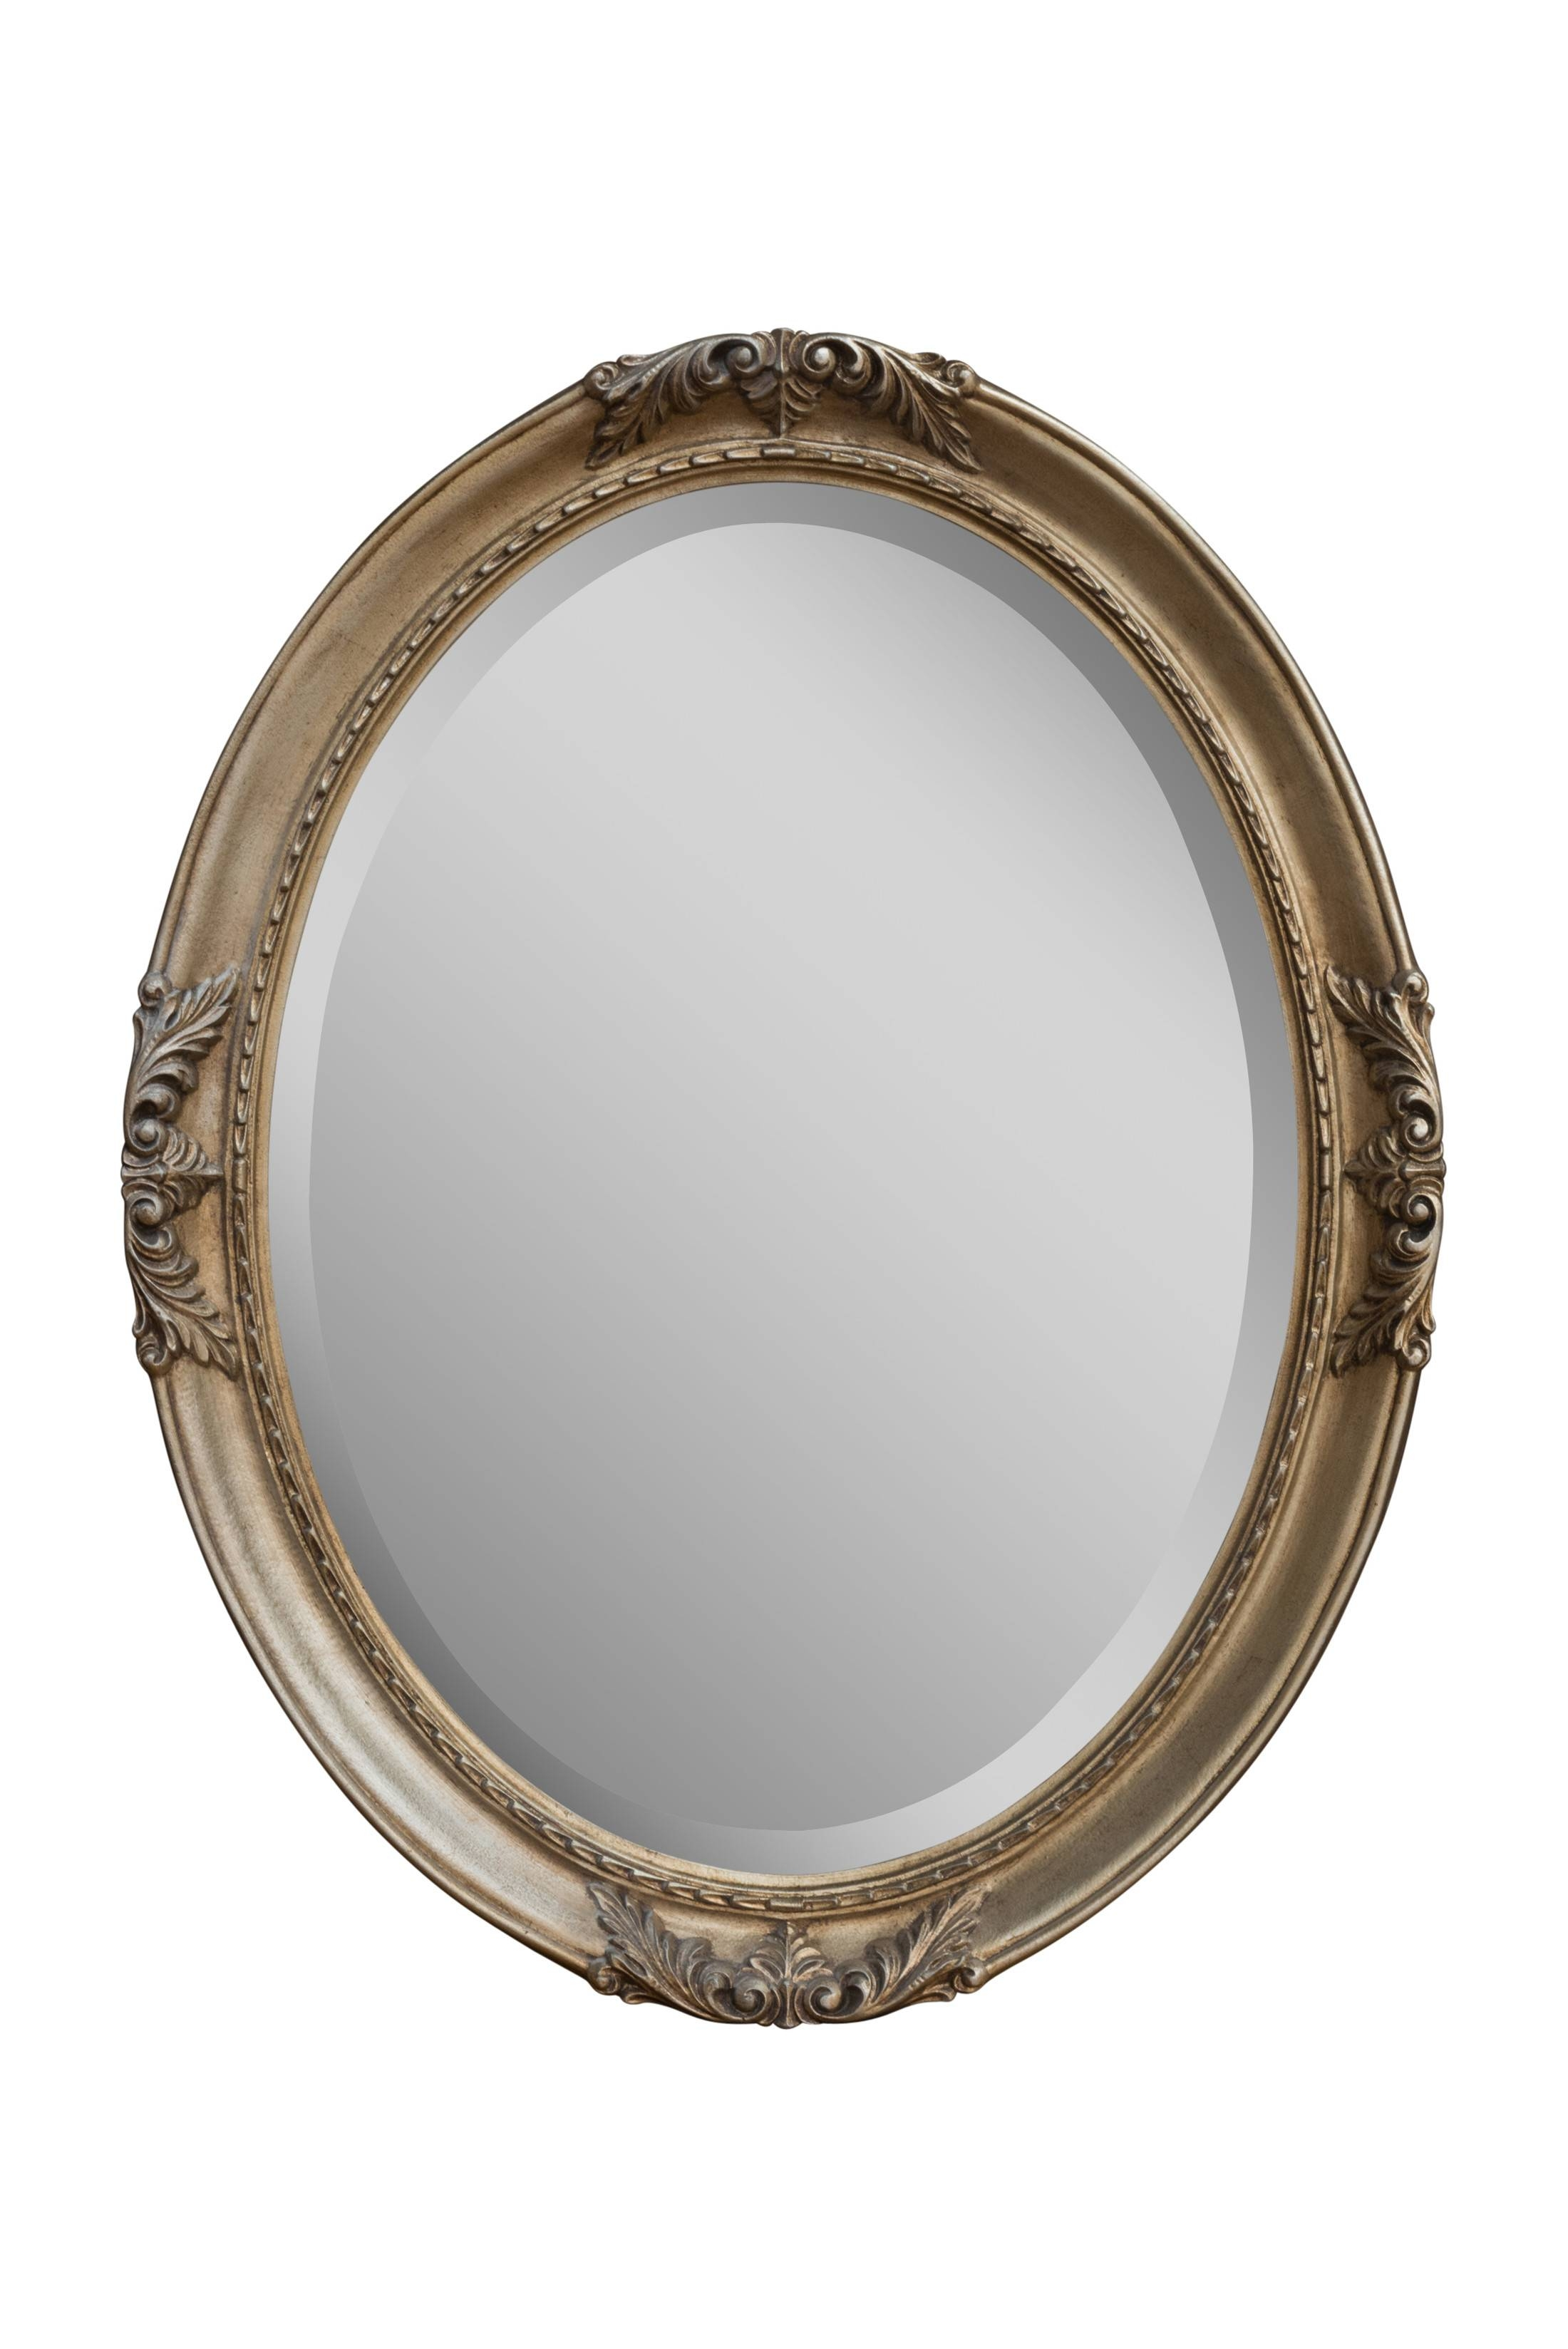 Silver Flora Oval | Bedroom Mirrors For Sale – Panfili Mirrors Within Silver Oval Mirrors (View 23 of 25)